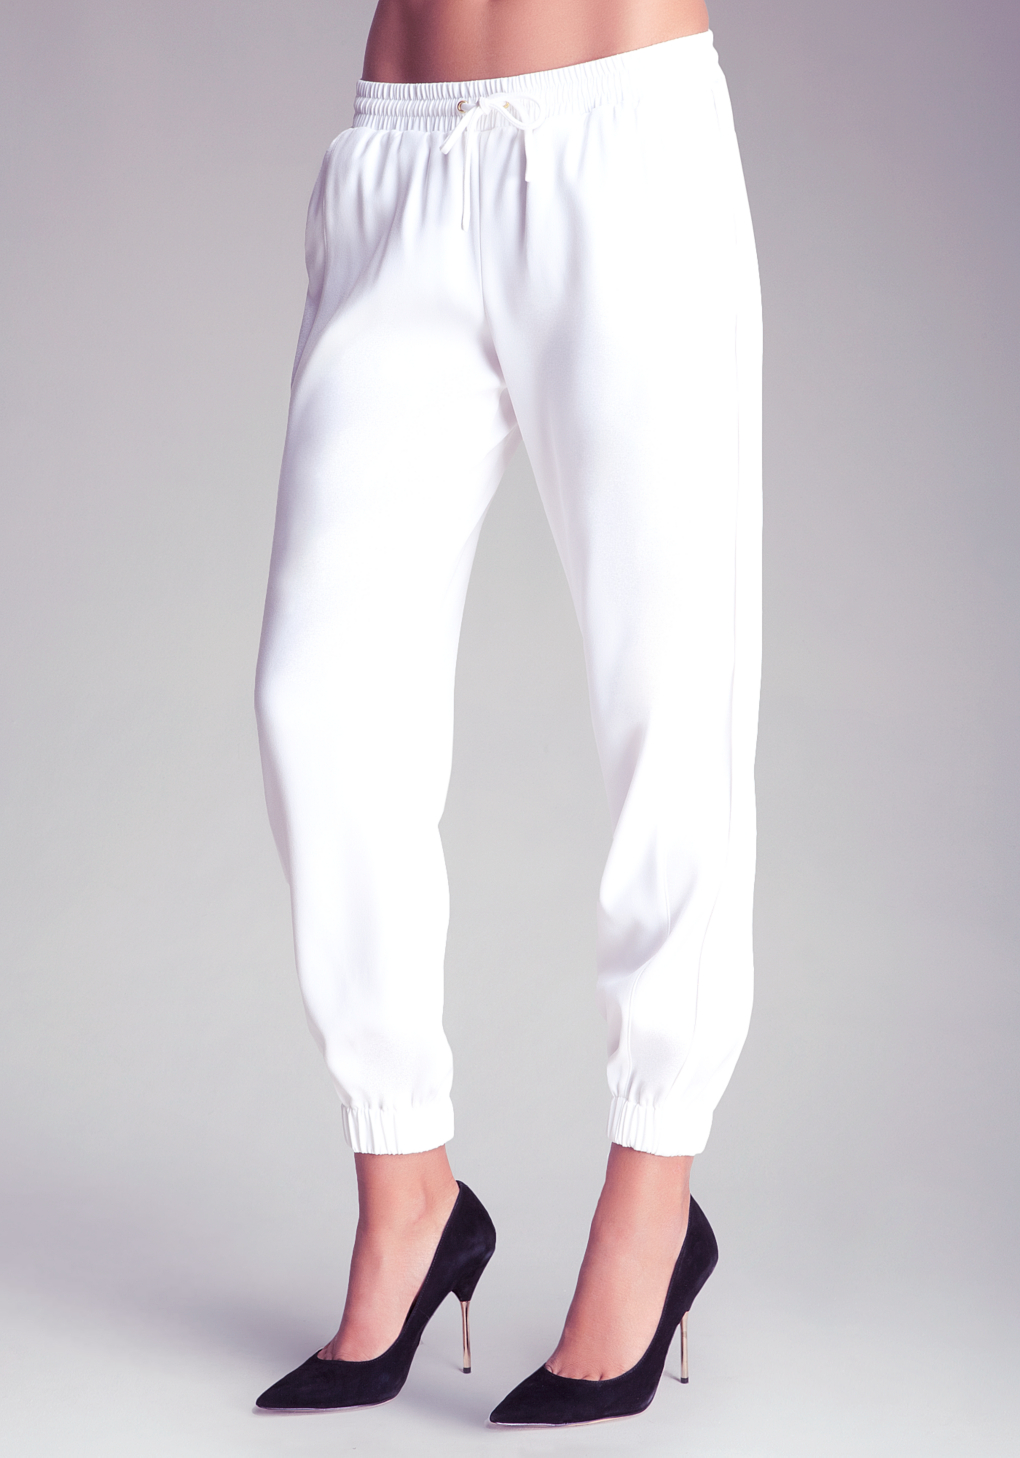 Bebe Contrast Track Pants in White | Lyst